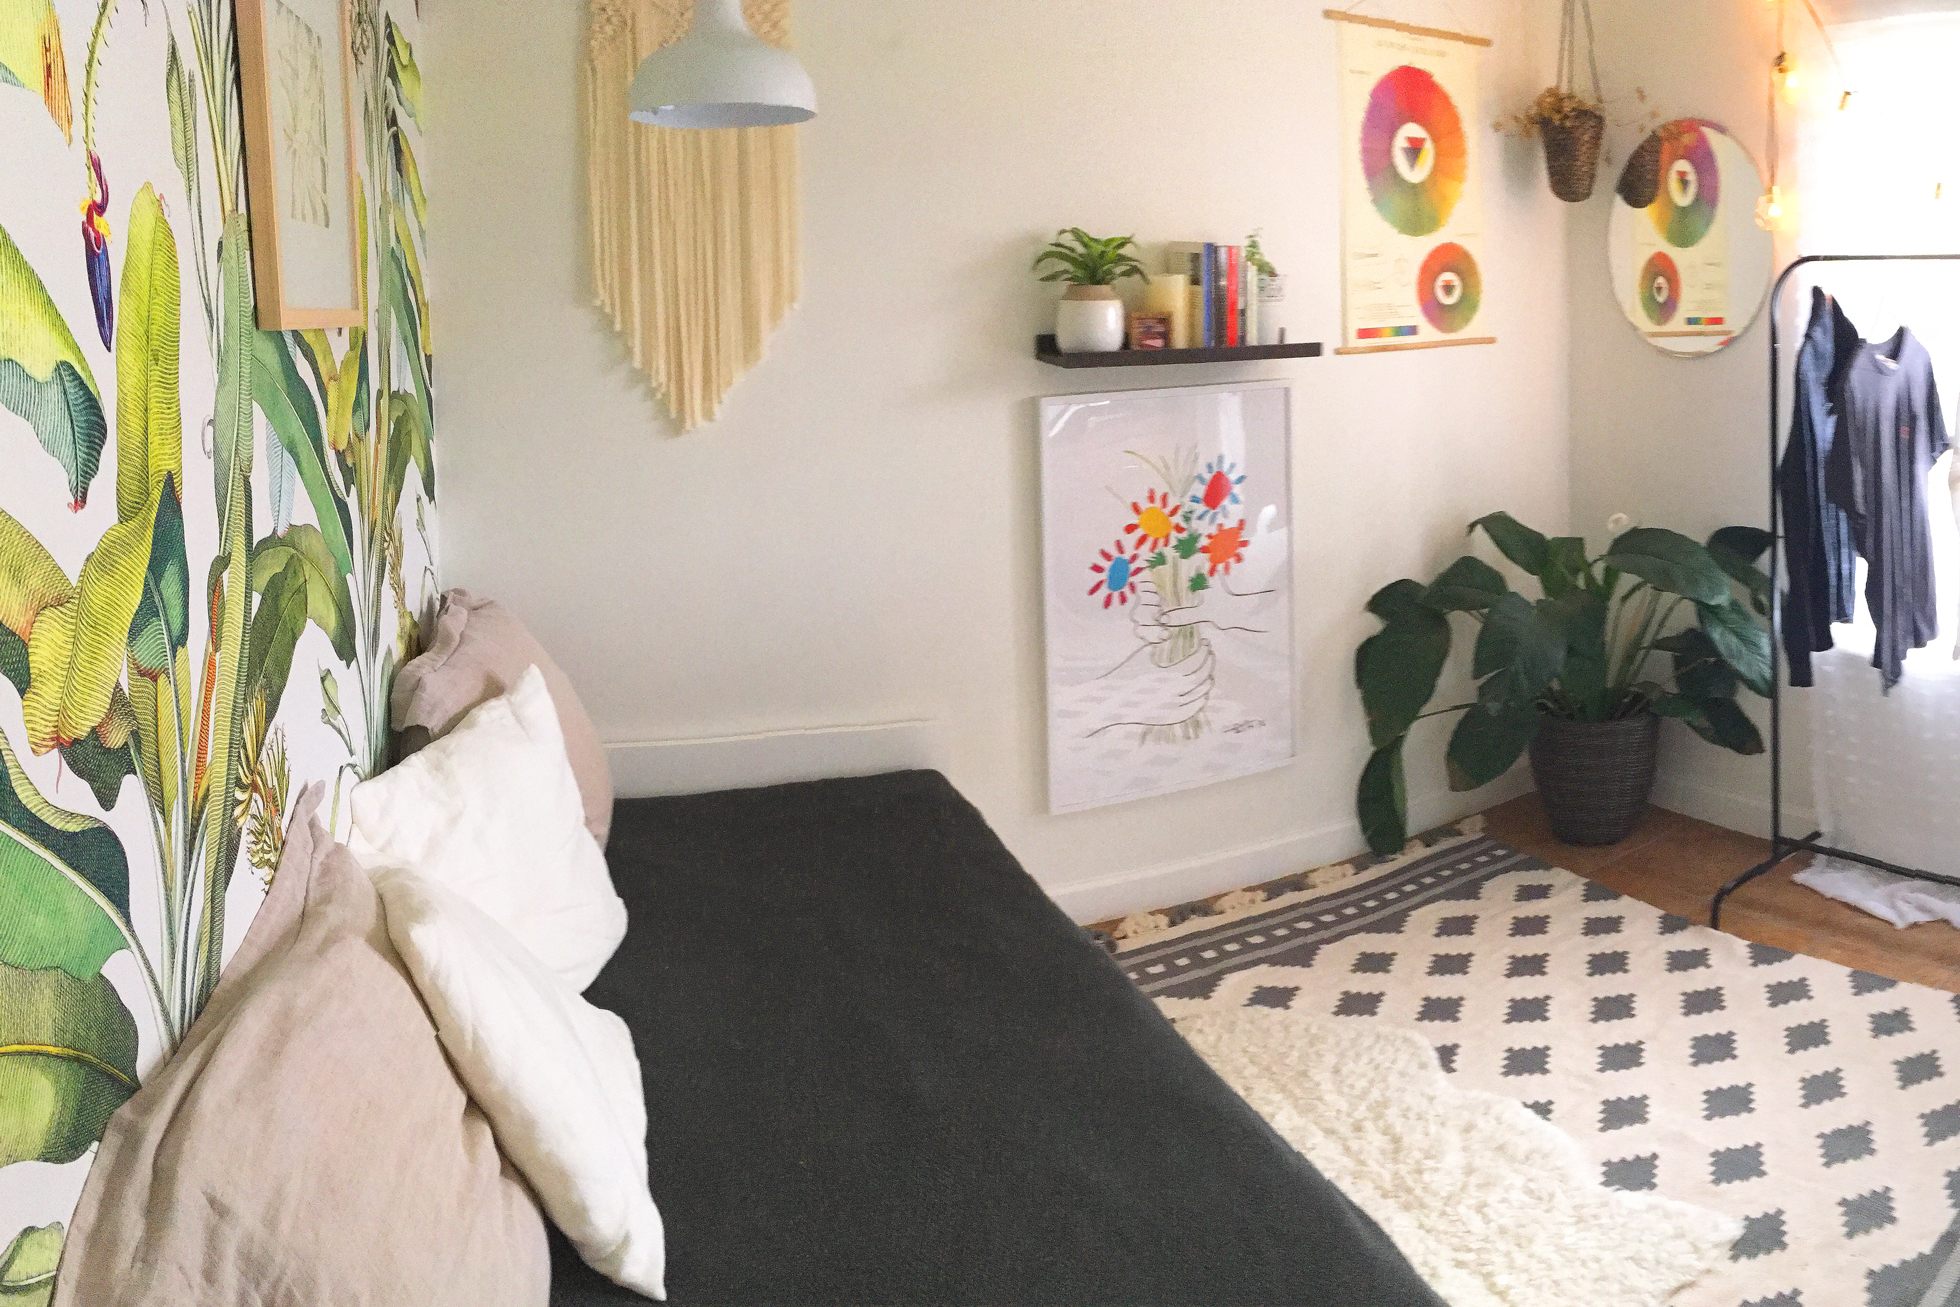 Bright room with tropical wallpaper and a black daybed